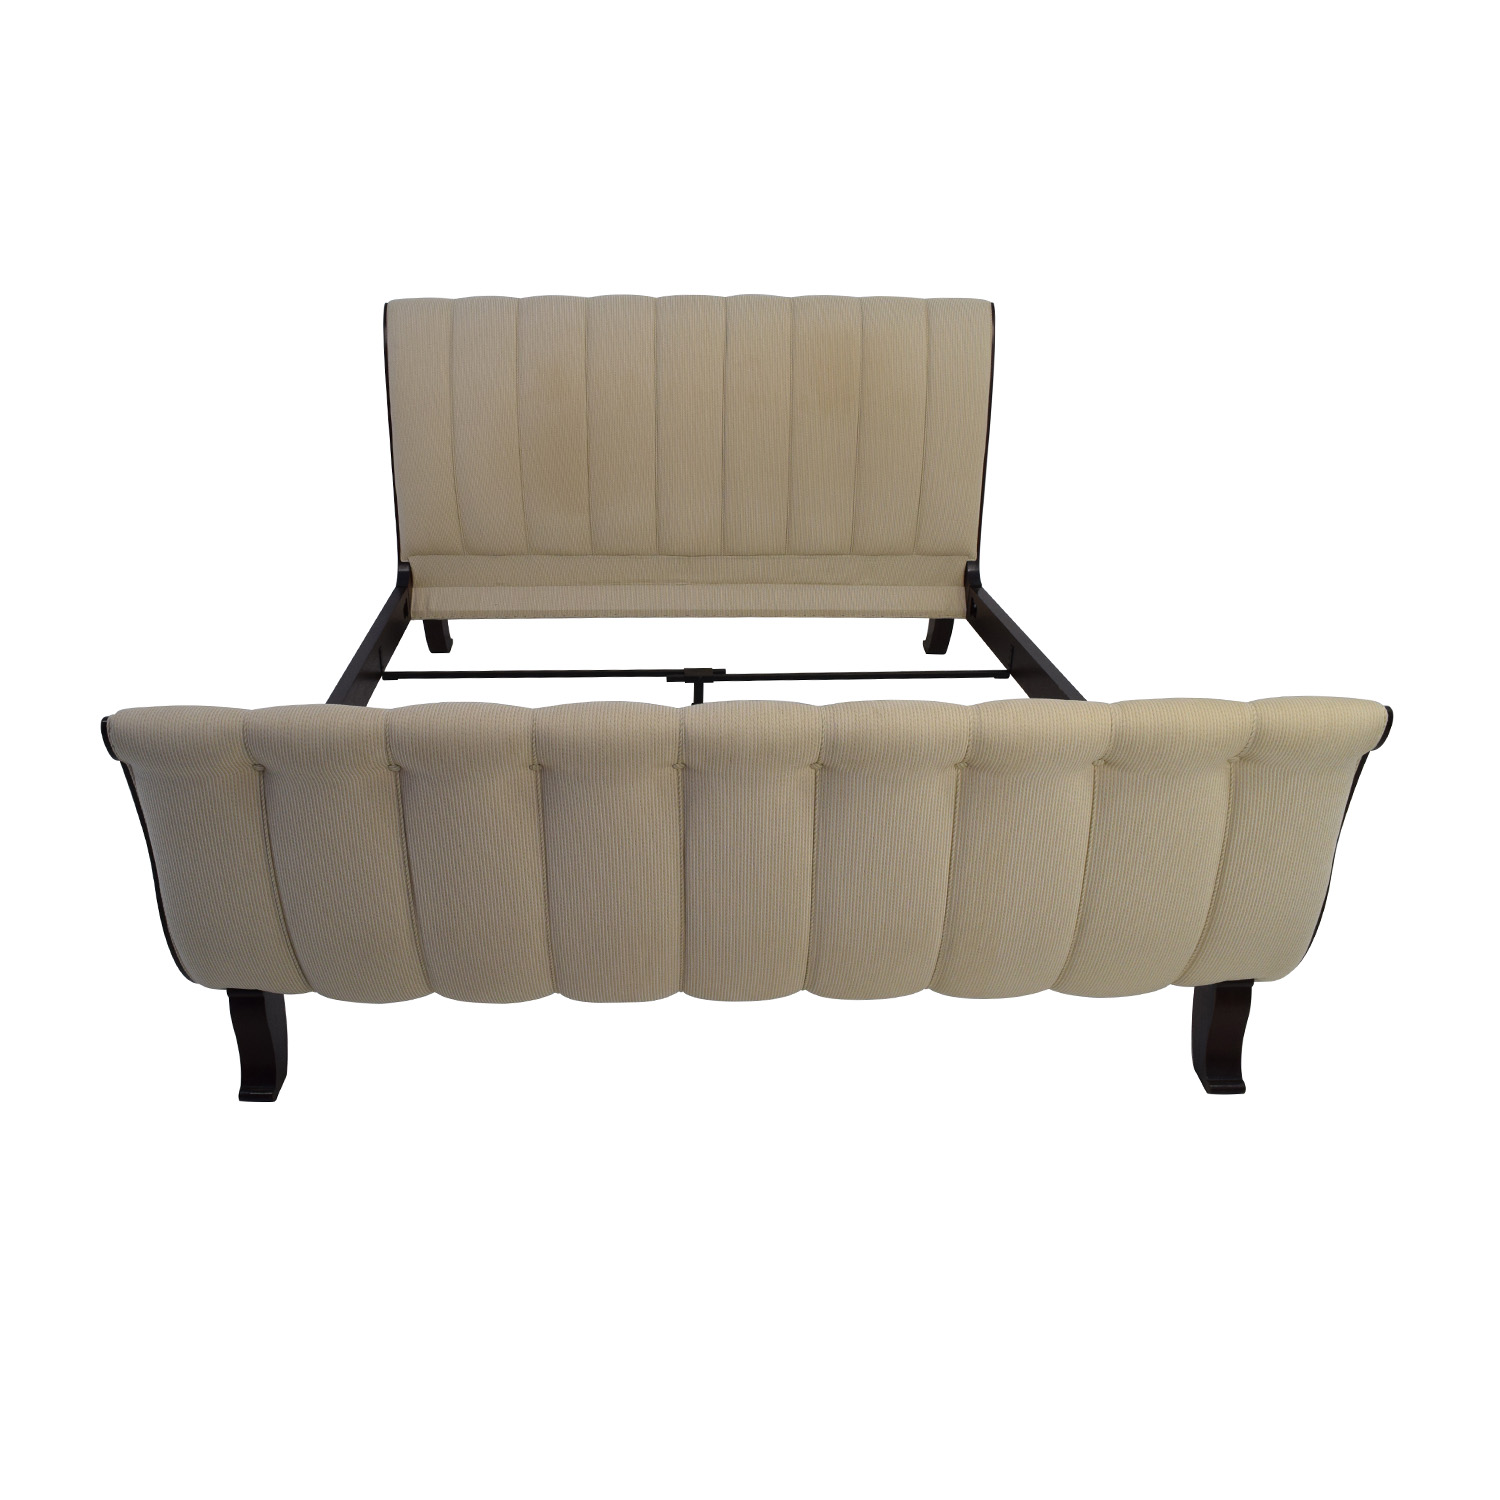 shop Lillian August Upholstered King Sleigh Bed Frame Lillian August Beds